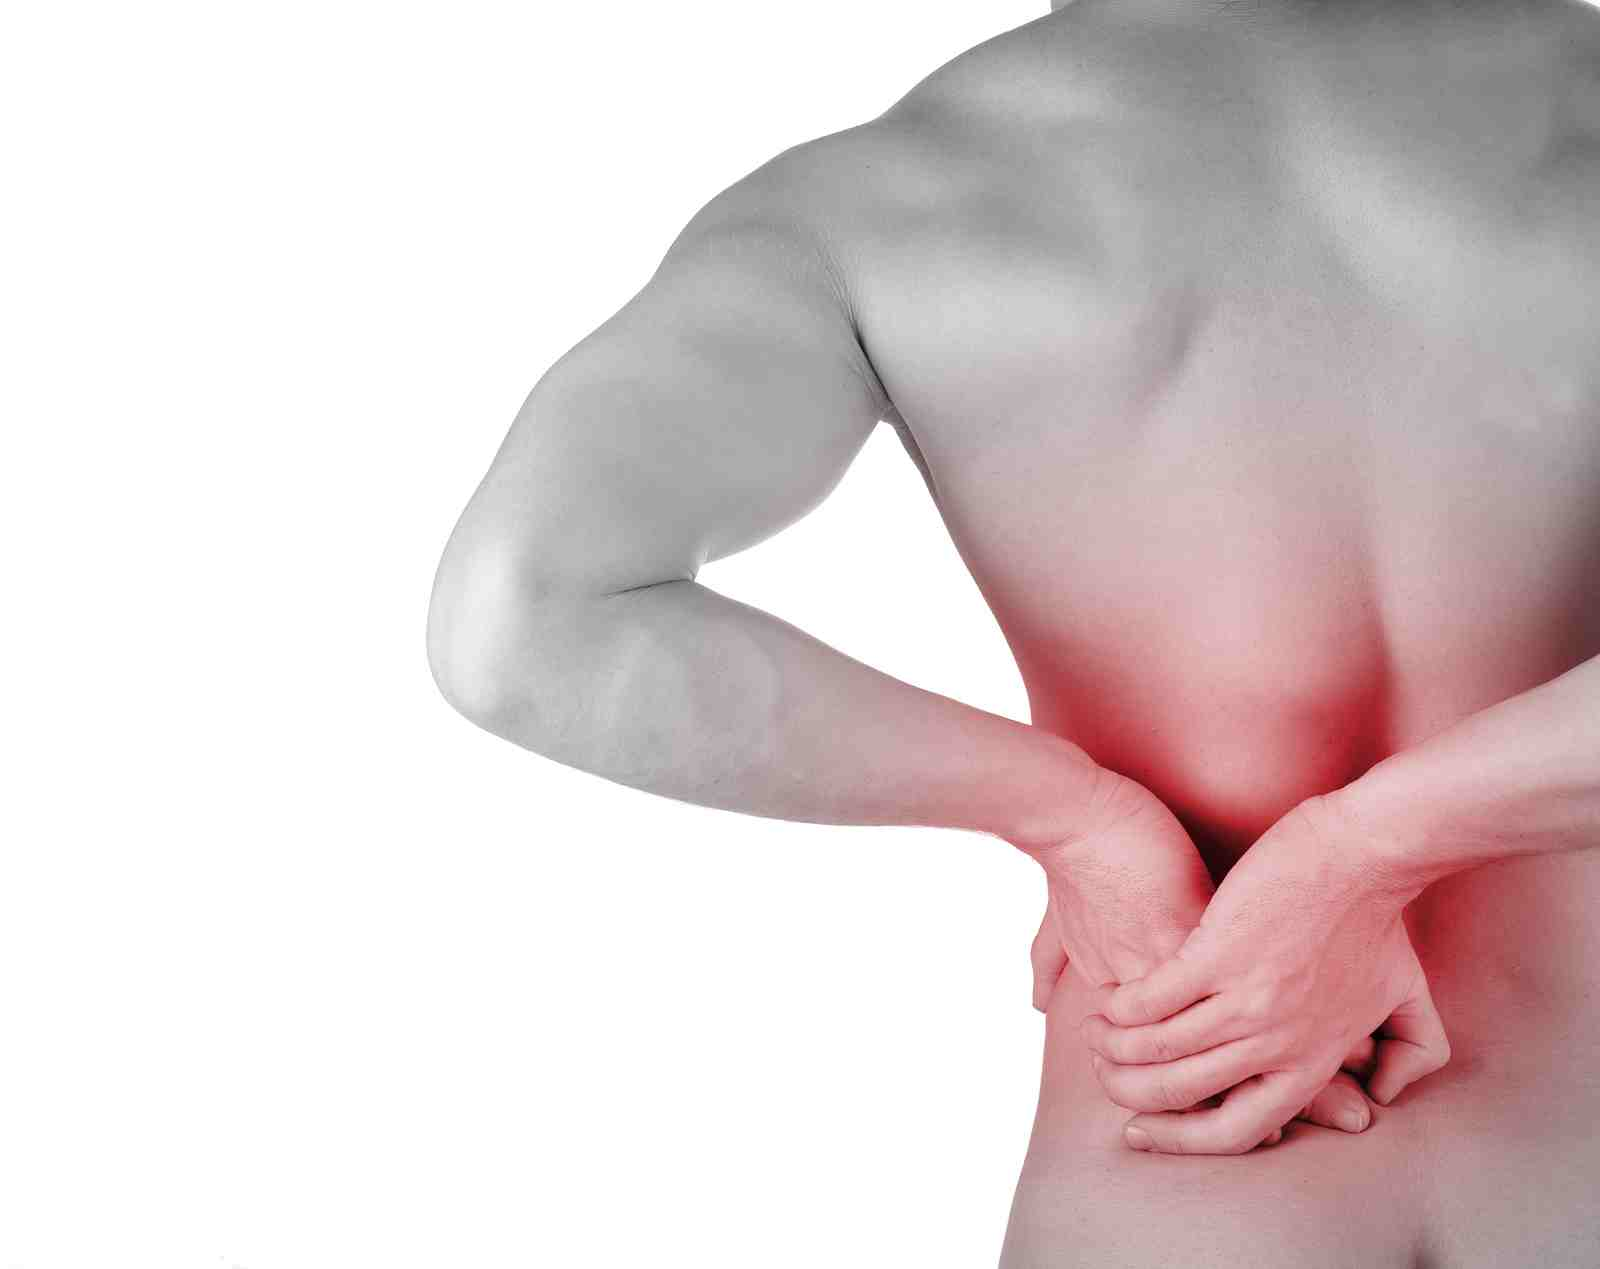 How Do Aches, Pain & Injuries Occur? And What To Do About It